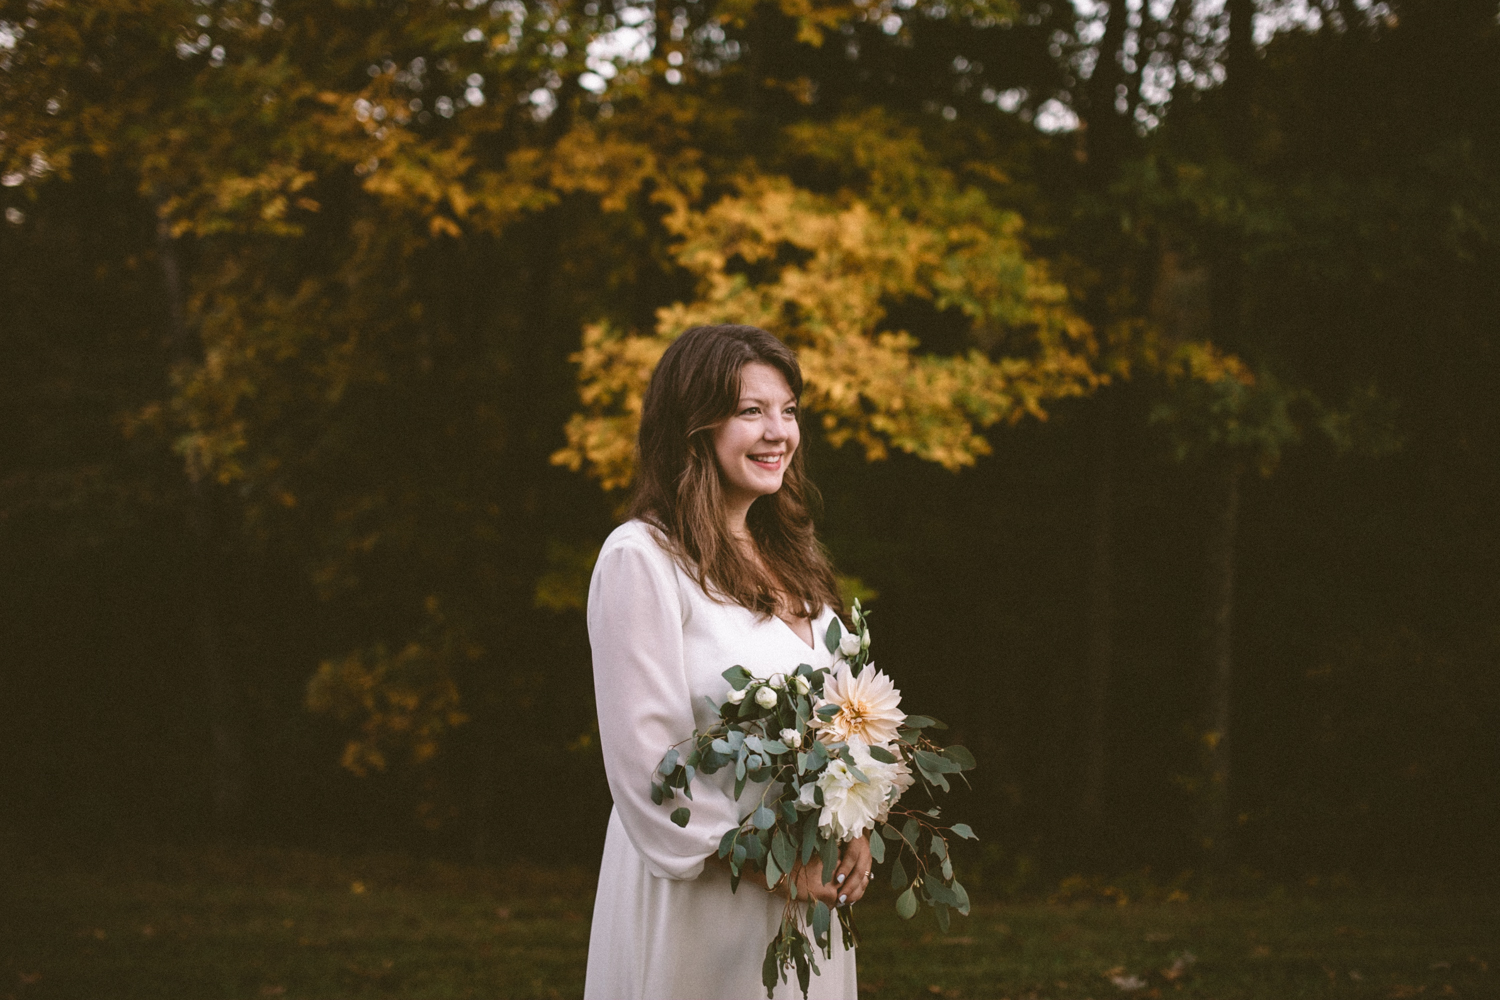 Tennessee_Based_Wedding_Photographers_-5.jpg